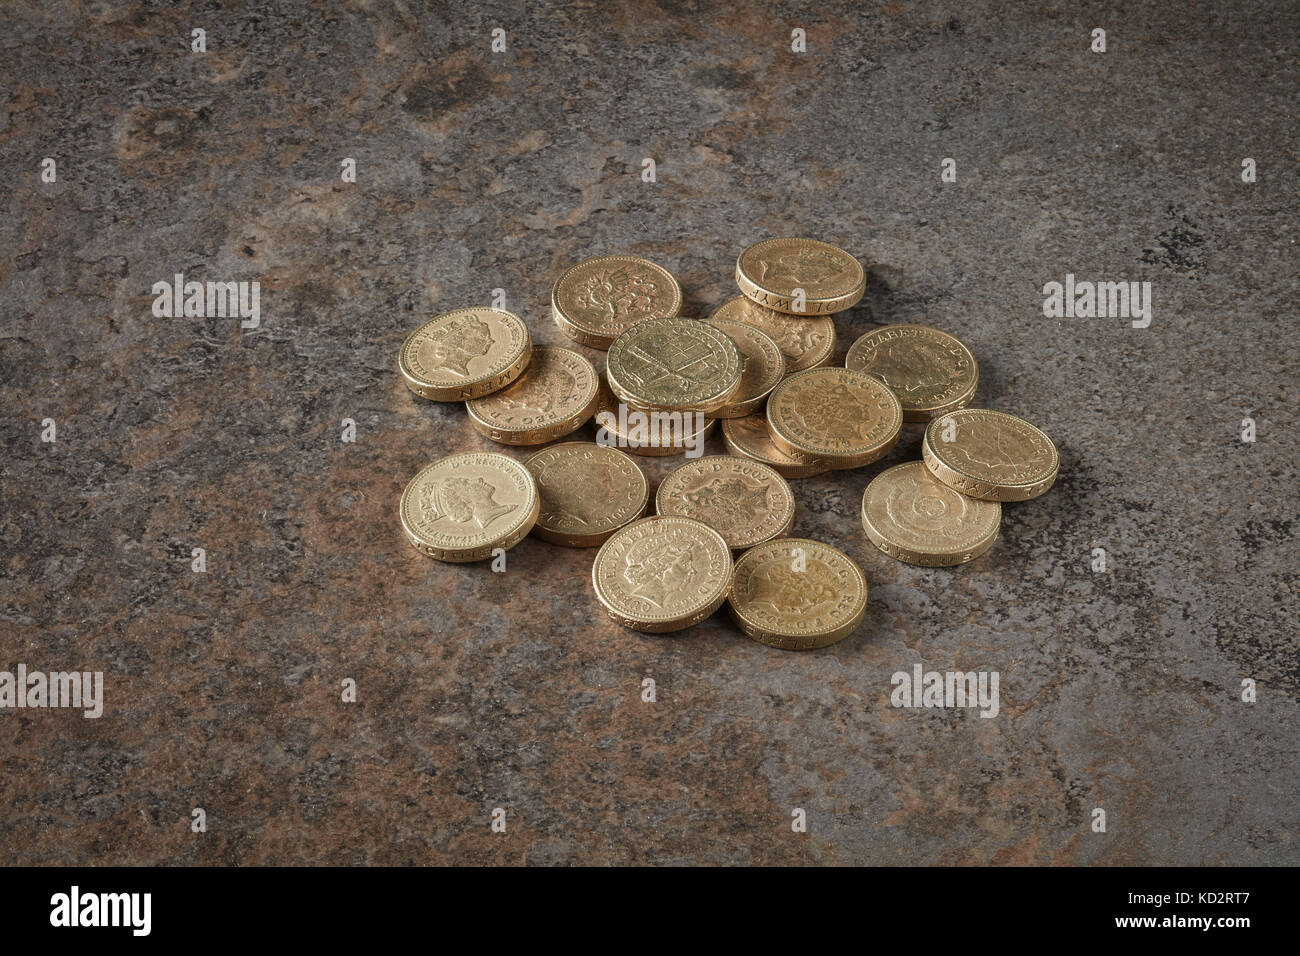 Old style One Pound Coins Cease to be legal tender after 15th October 2017 - Stock Image